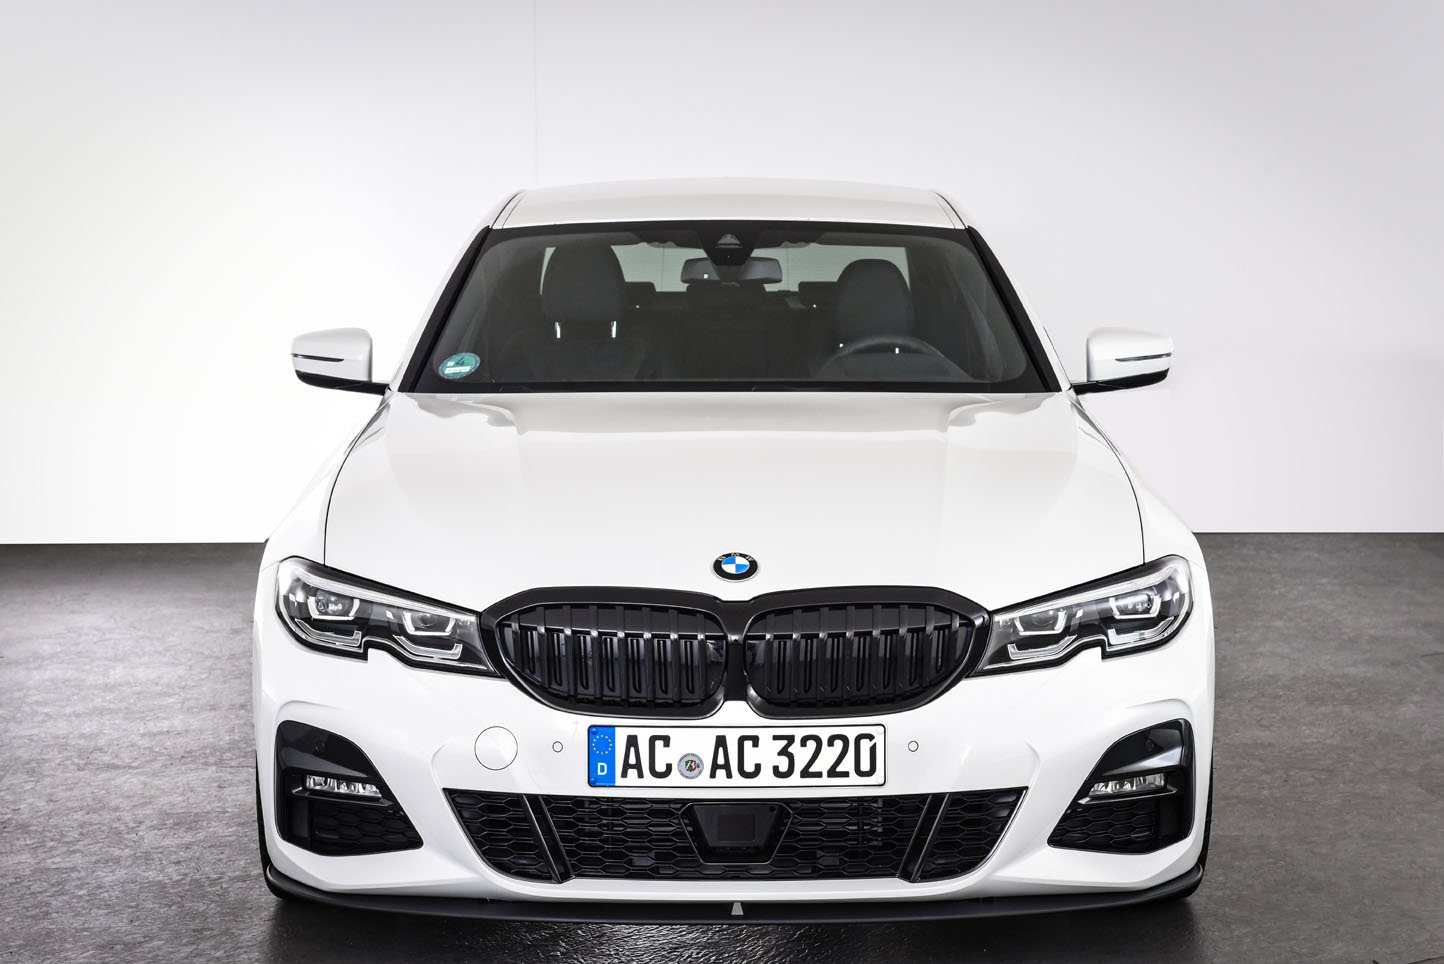 Name:  3c33148e-ac-schnitzer-tuning-parts-for-the-bmw-3-series-g20-9.jpg Views: 8230 Size:  136.2 KB